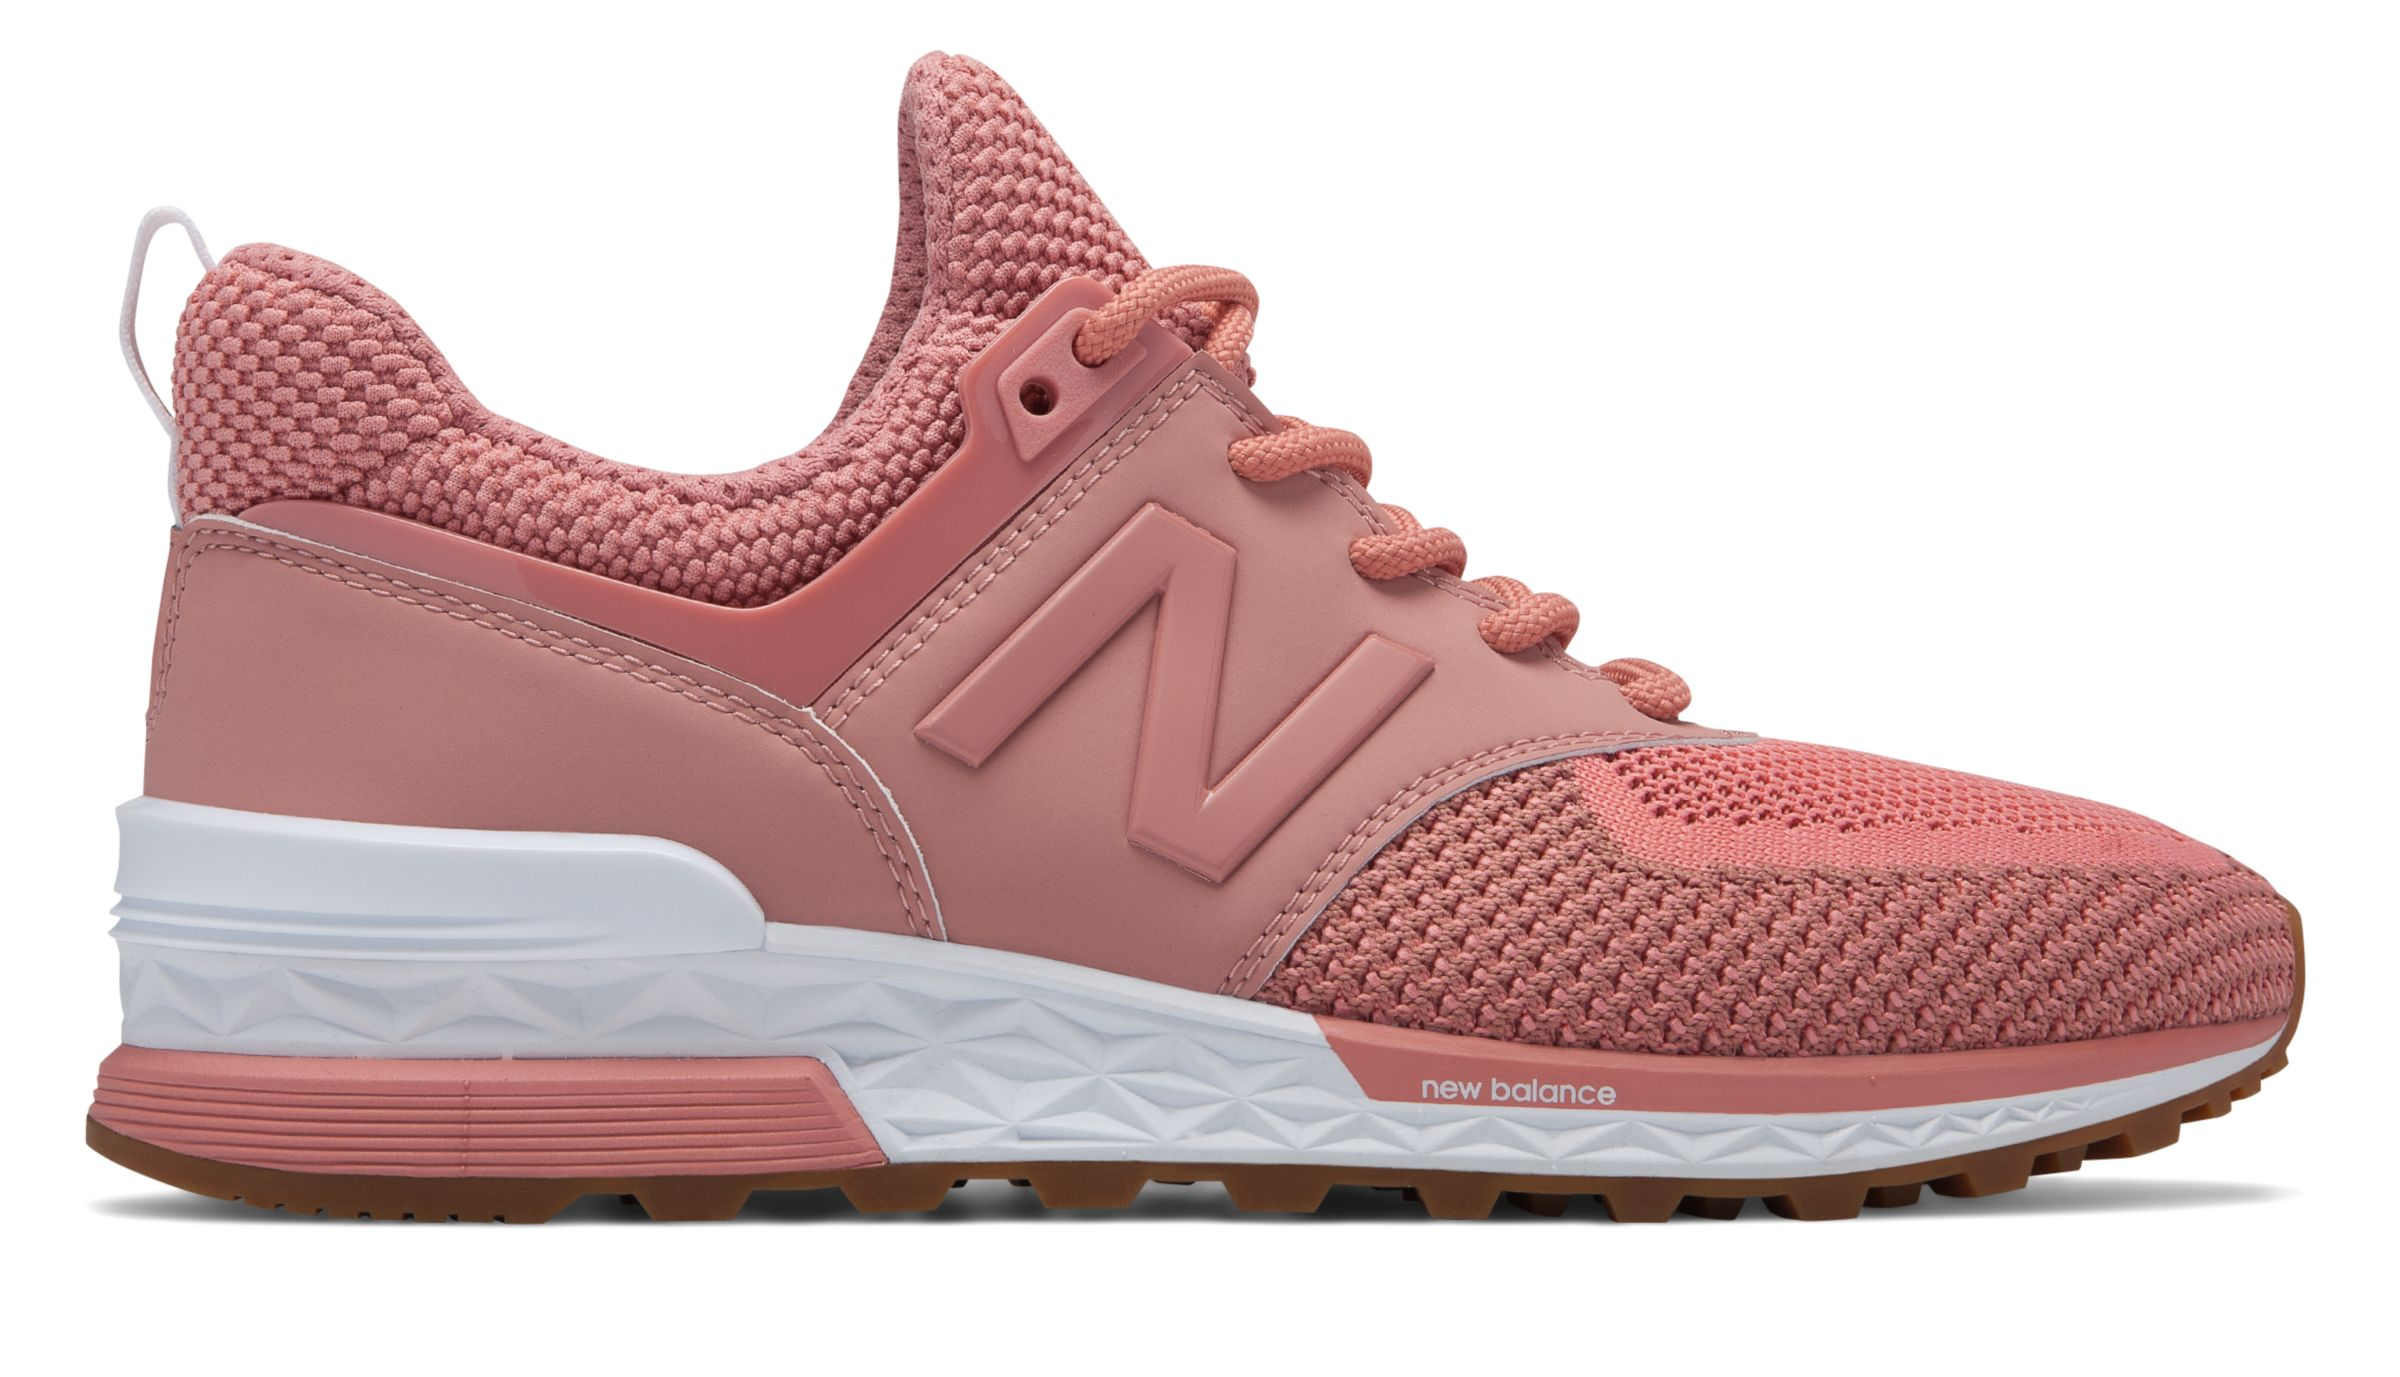 separation shoes 33b37 62638 Details about New Balance Female Women's 574 Sport Adult Lifestyle Shoes  Stylish Pink